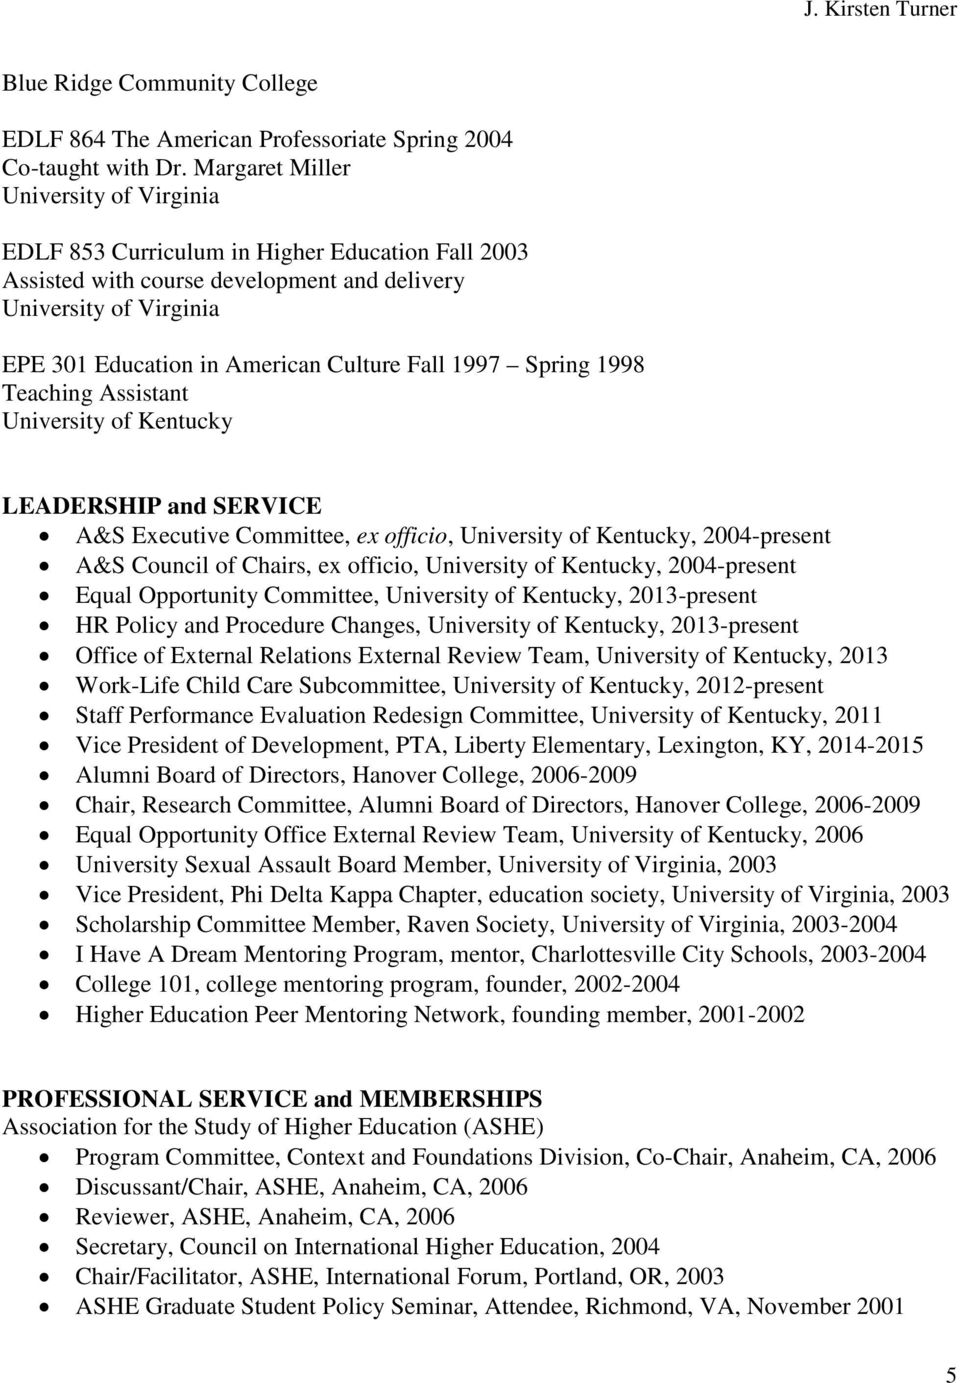 Fall 1997 Spring 1998 Teaching Assistant LEADERSHIP and SERVICE A&S Executive Committee, ex officio,, 2004-present A&S Council of Chairs, ex officio,, 2004-present Equal Opportunity Committee,,